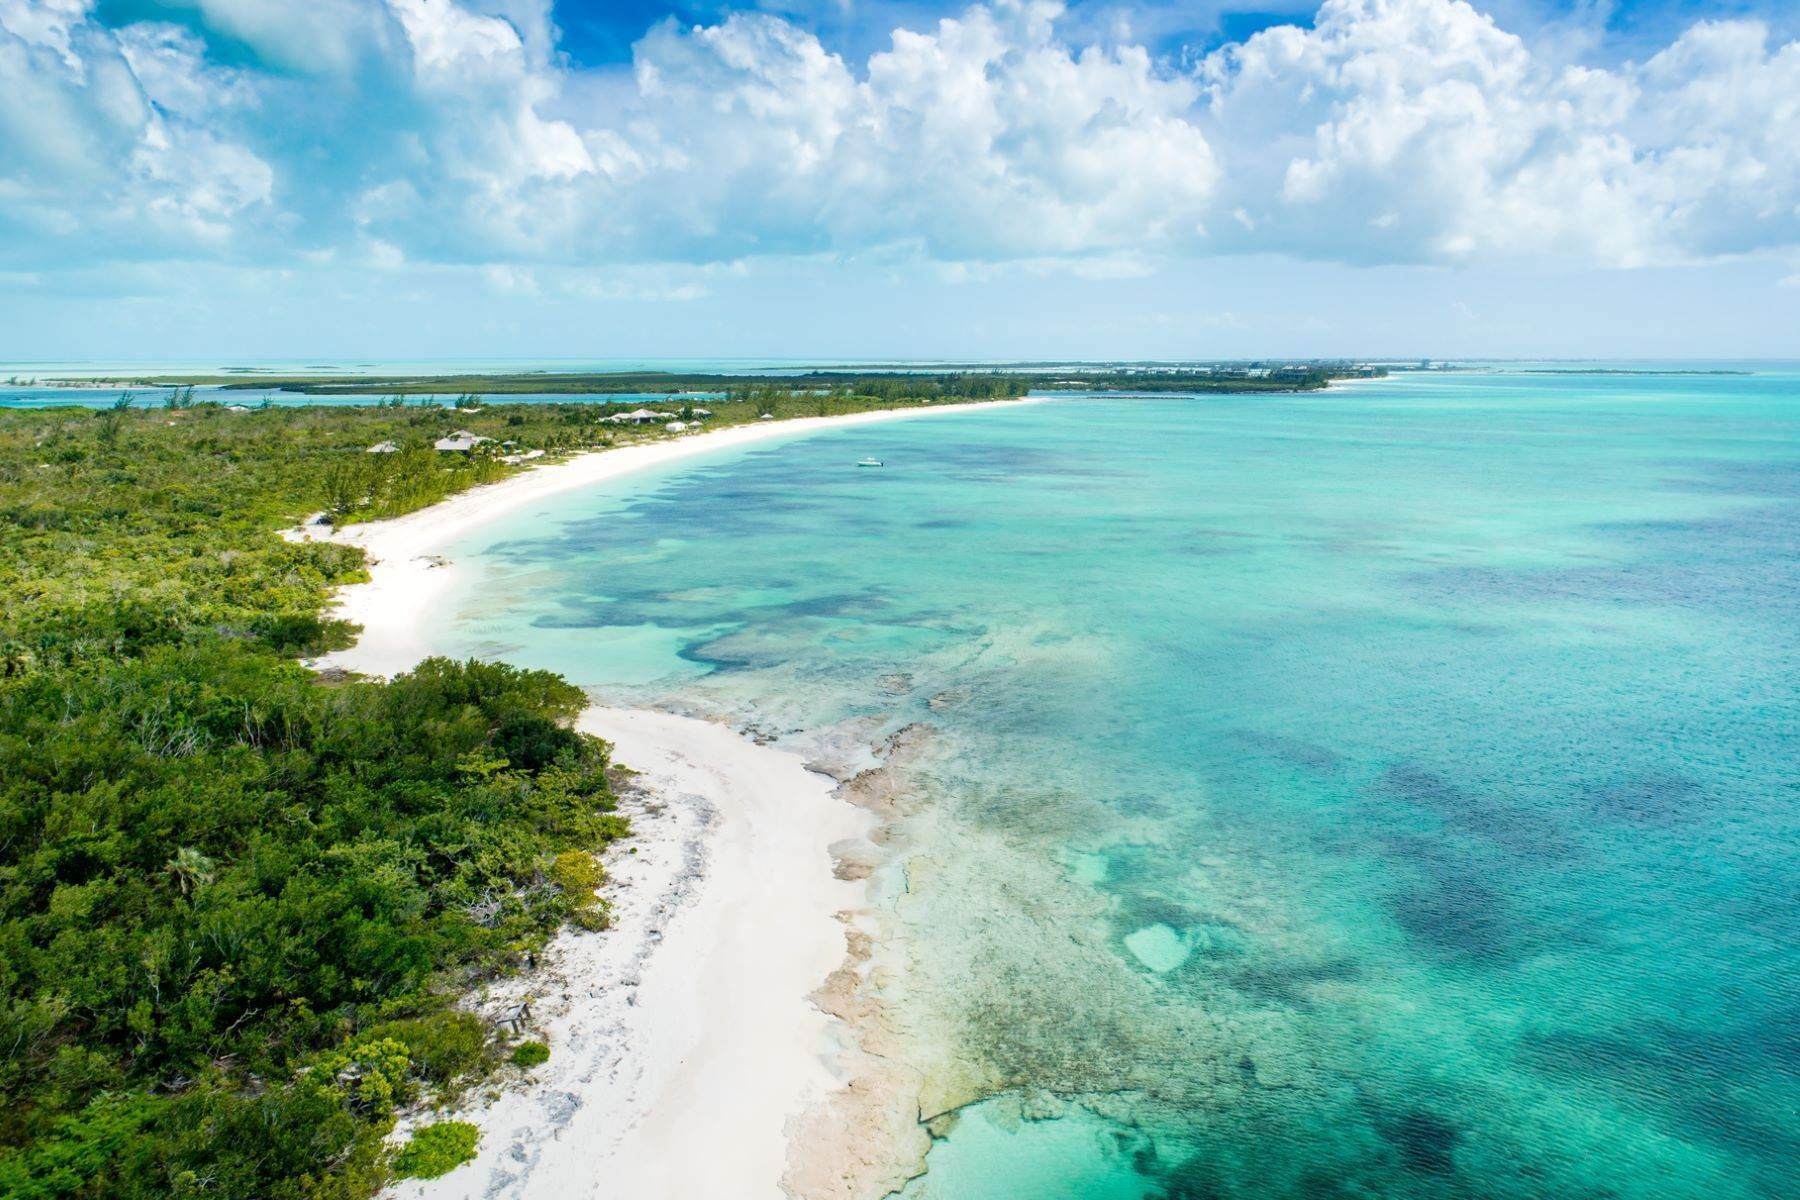 23. Land for Sale at Parrot Cay Estate Land 167, 168 & 169 Parrot Cay, Parrot Cay Turks And Caicos Islands